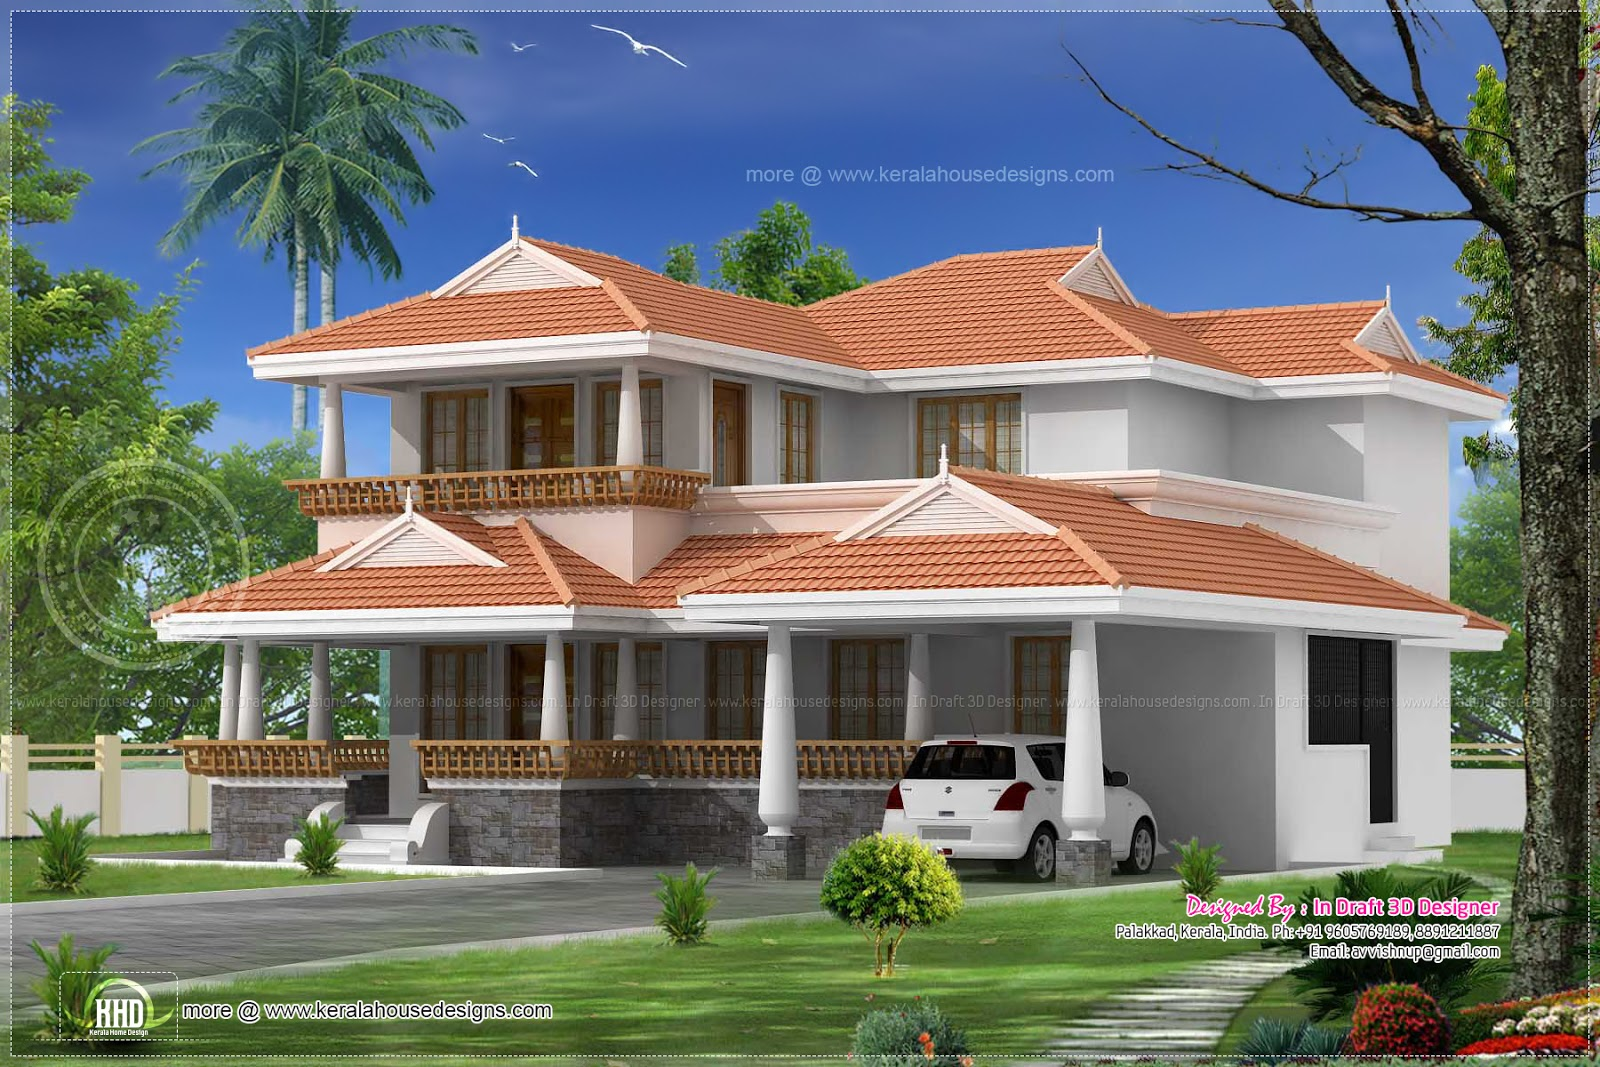 4 bed room kerala traditional villa 2615 sq ft home for Villa plans in kerala